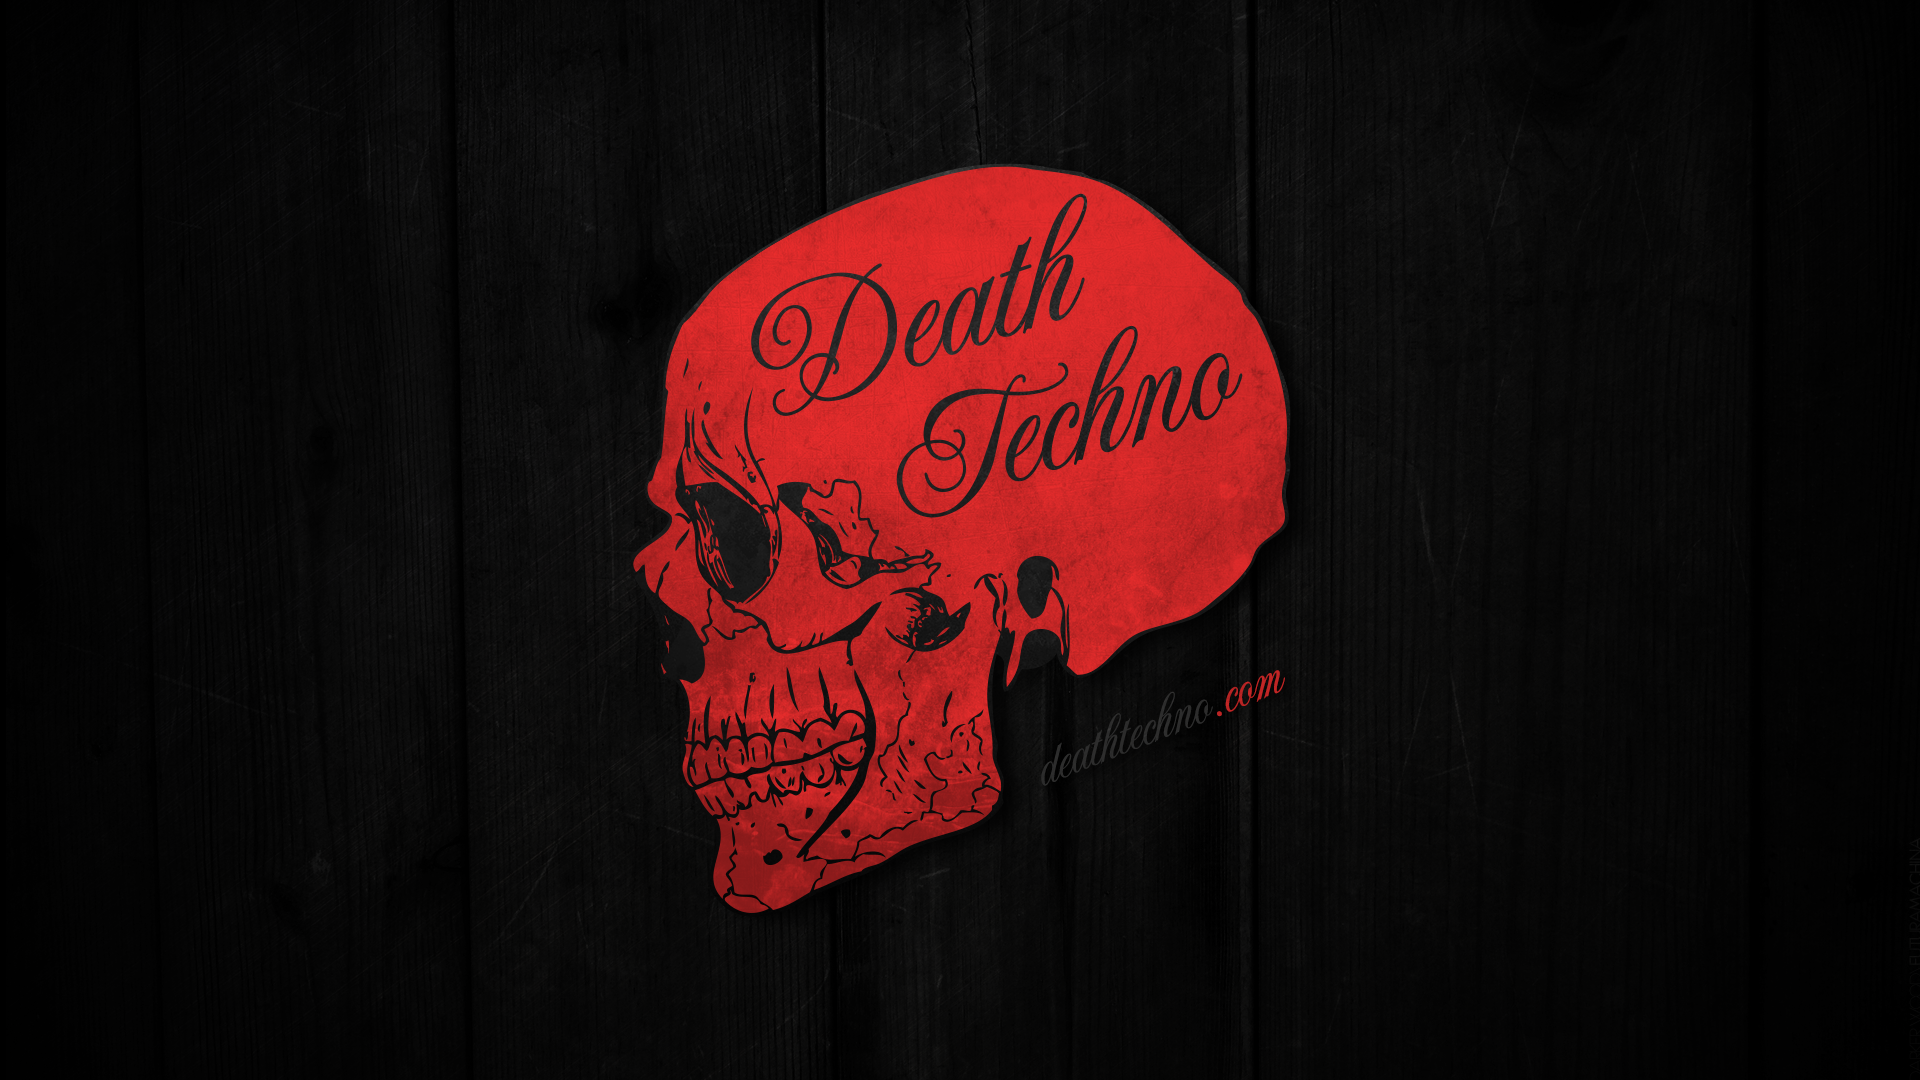 Death Techno Wallpaper 2013.2 HD 1920 x 1080